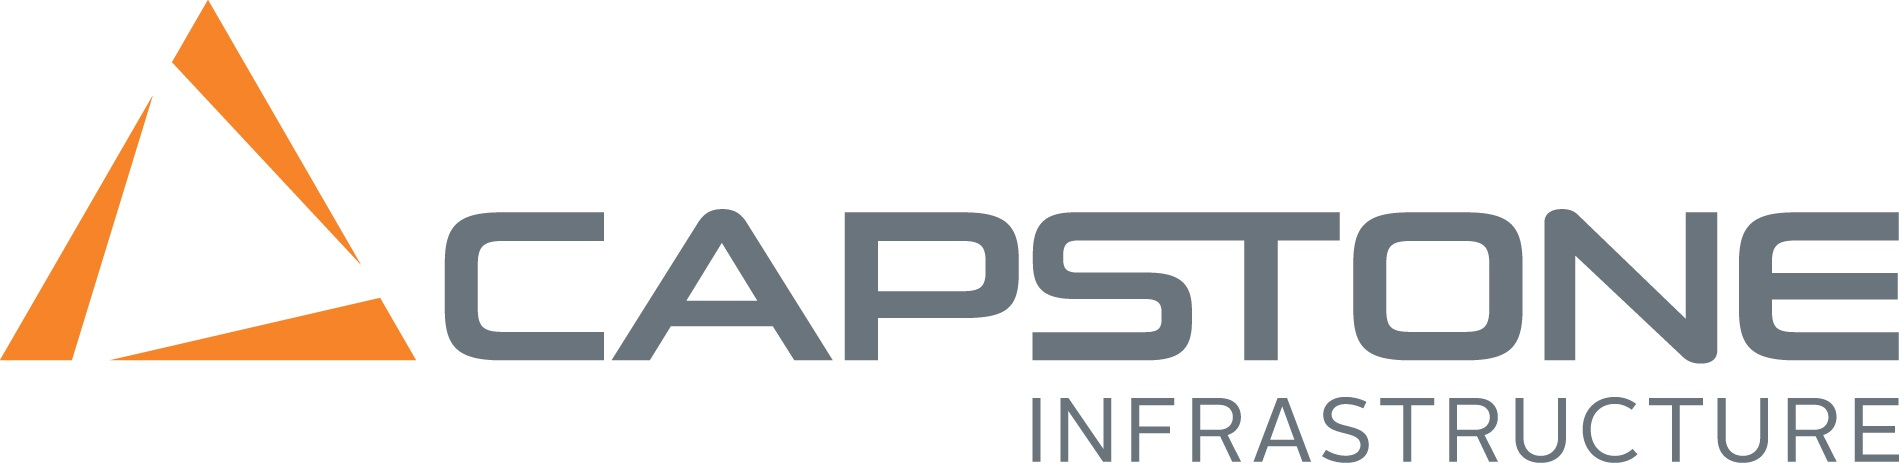 Capstone Infrastructure Corporation Reports Third Quarter 2018 Results  and Declares a Quarterly Dividend